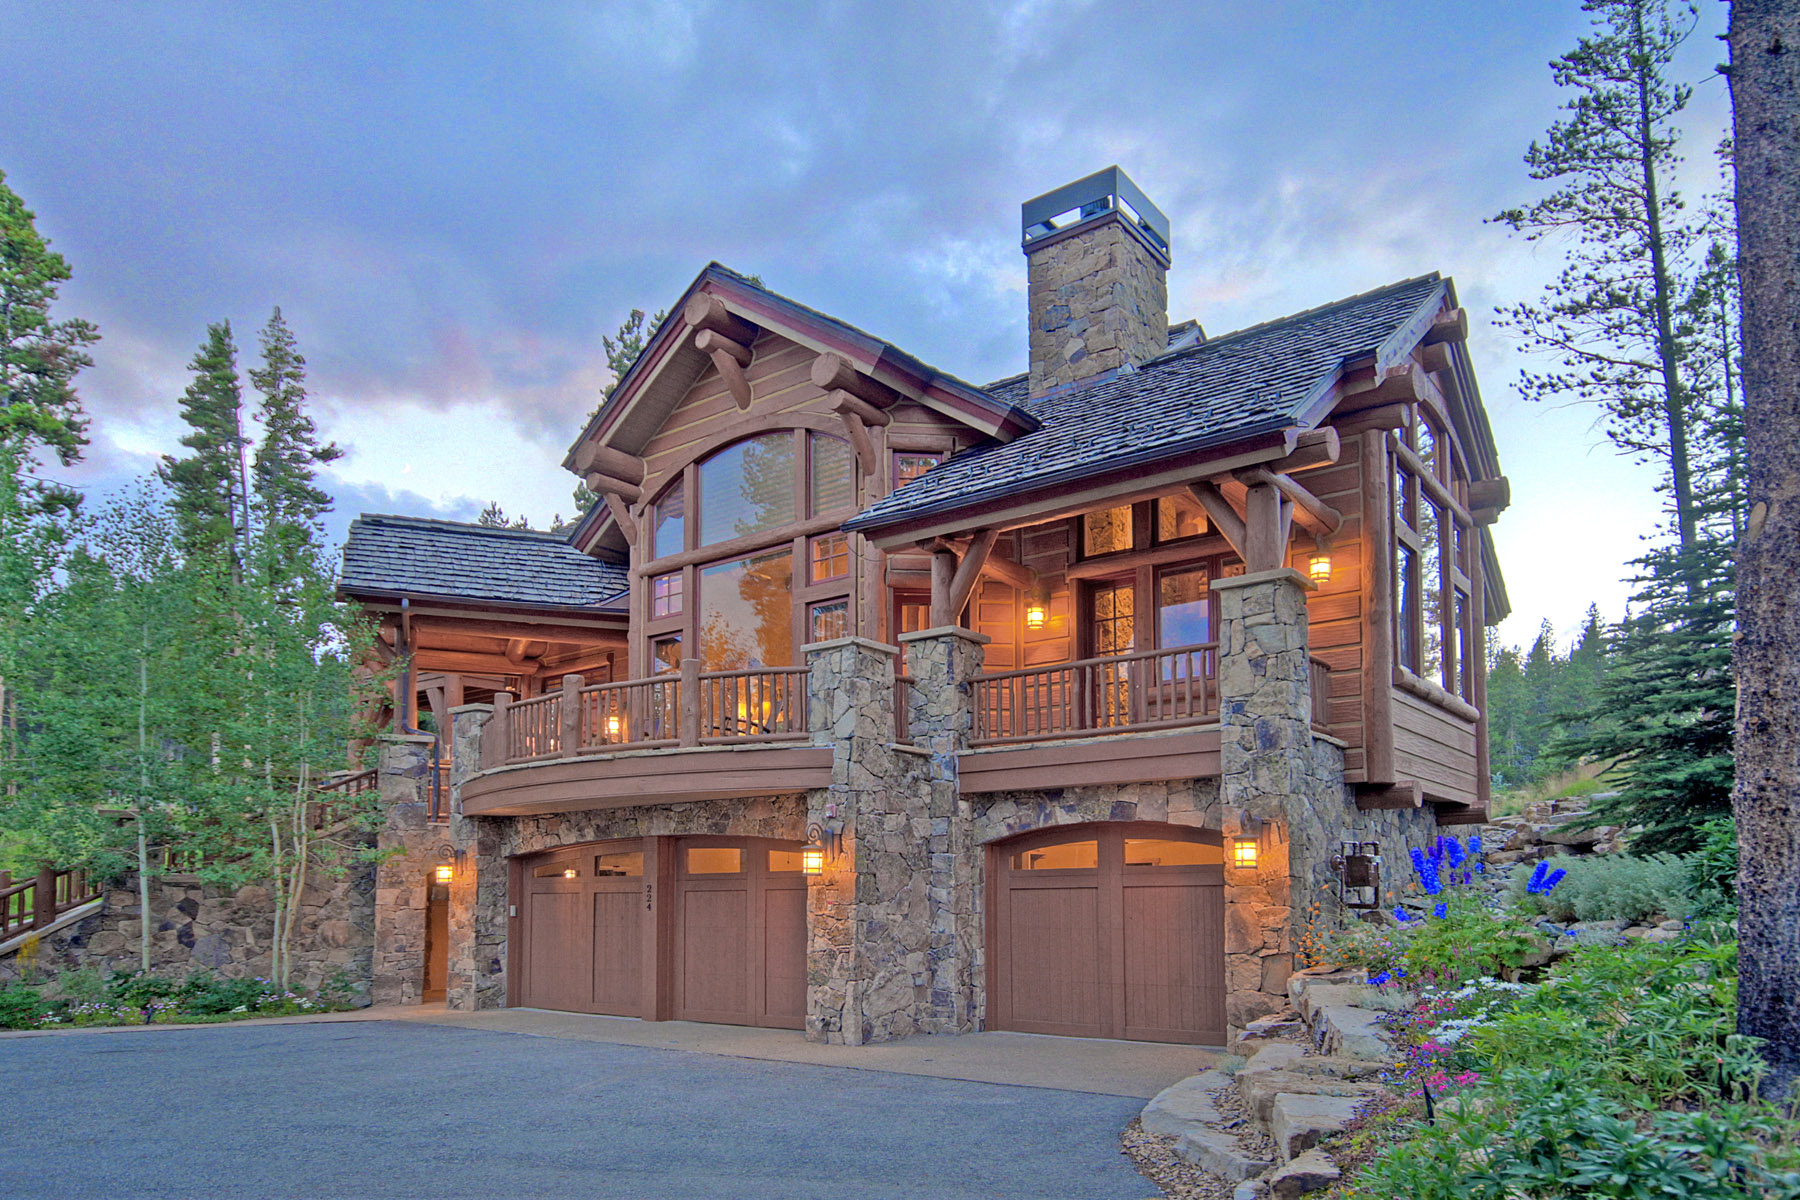 Single Family Home for Sale at 224 Westridge Rd 224 Westridge Road Breckenridge, Colorado 80424 United States